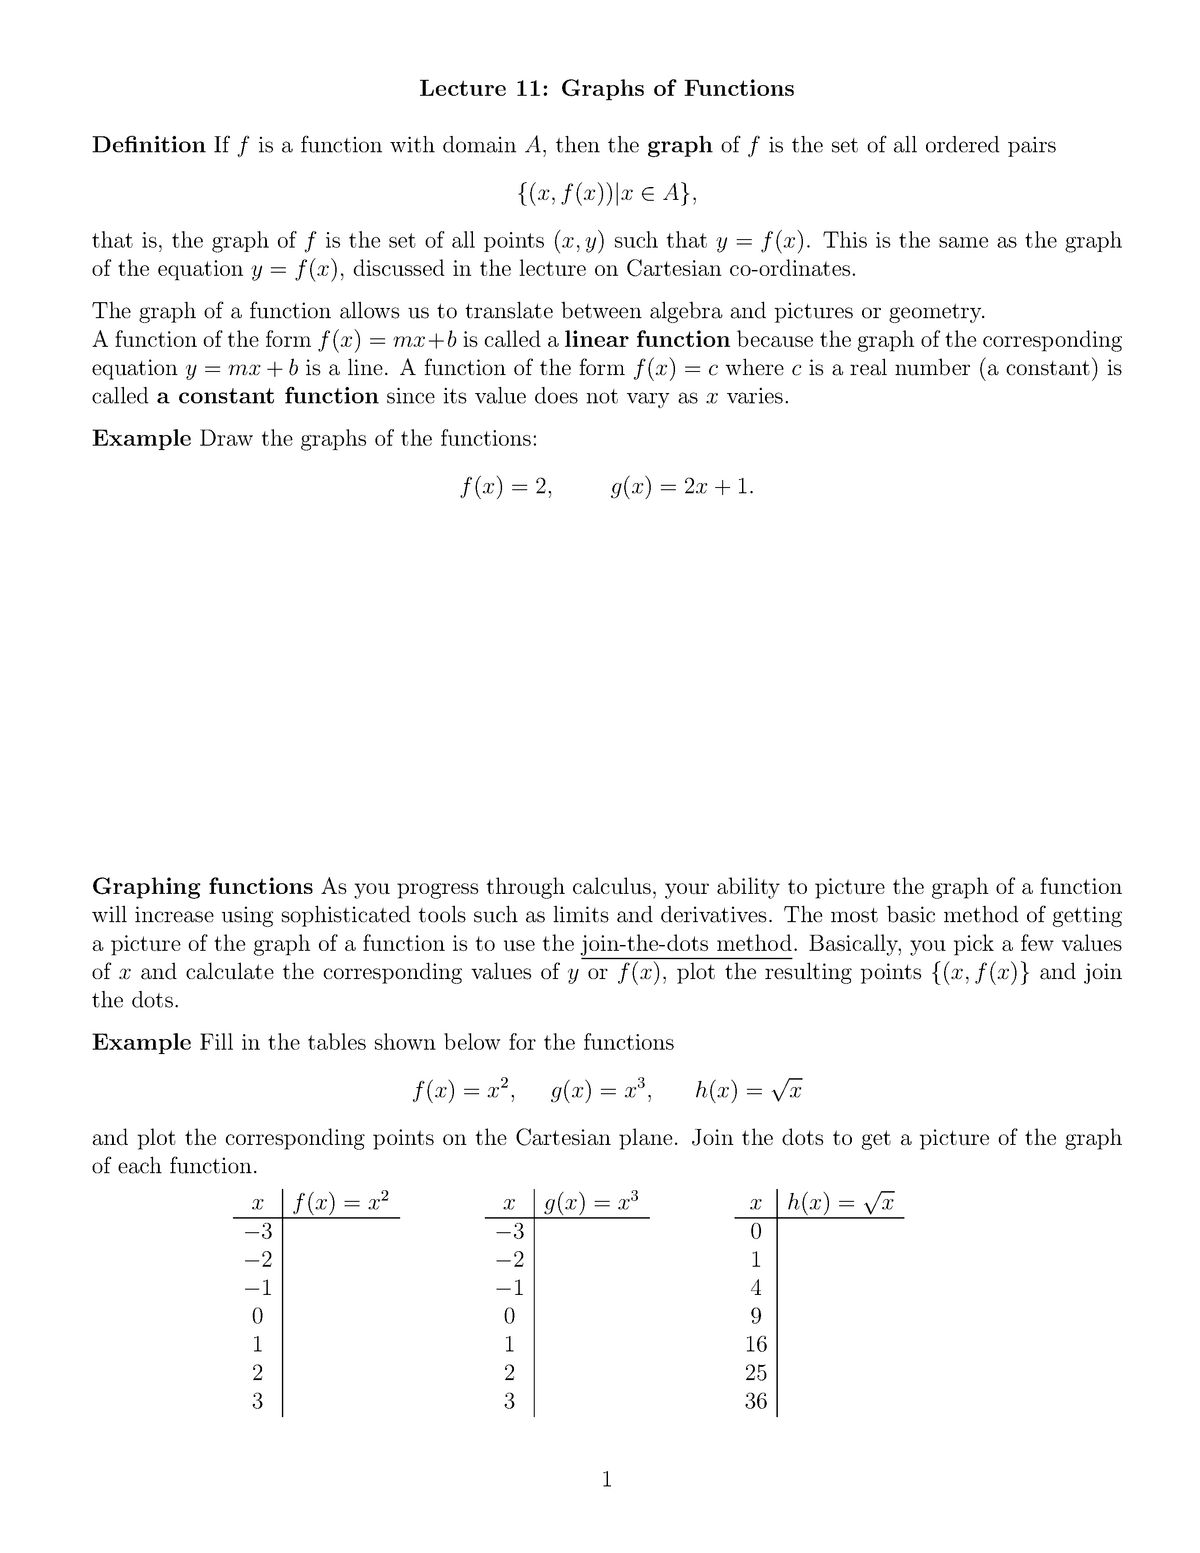 Precalculus Lecture 11 Graphs of Functions - MATH 10550